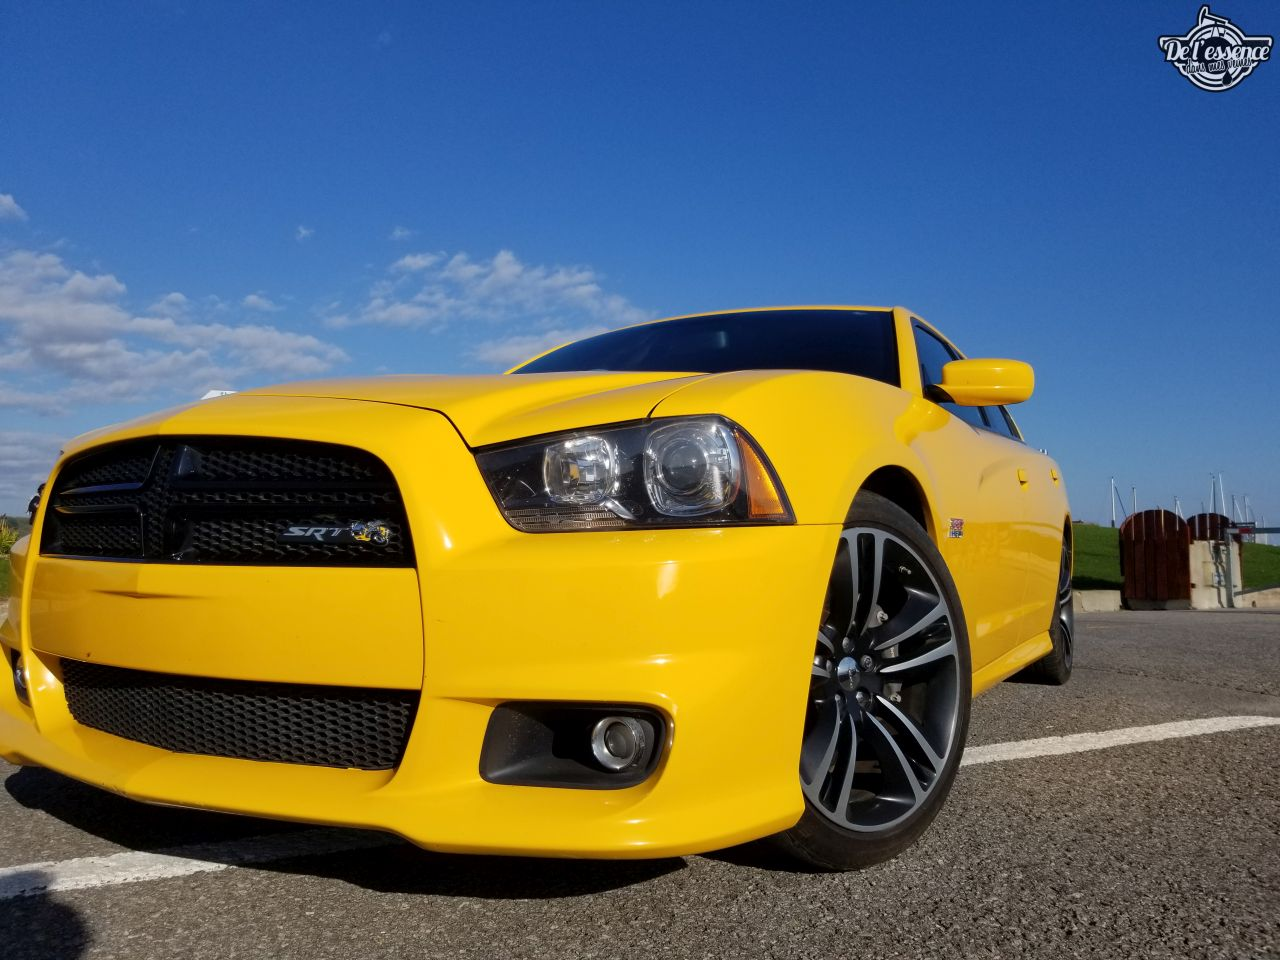 Dodge Charger Super Bee 2012 - Elle fait bizzz-bizzz... Vroap ! 9